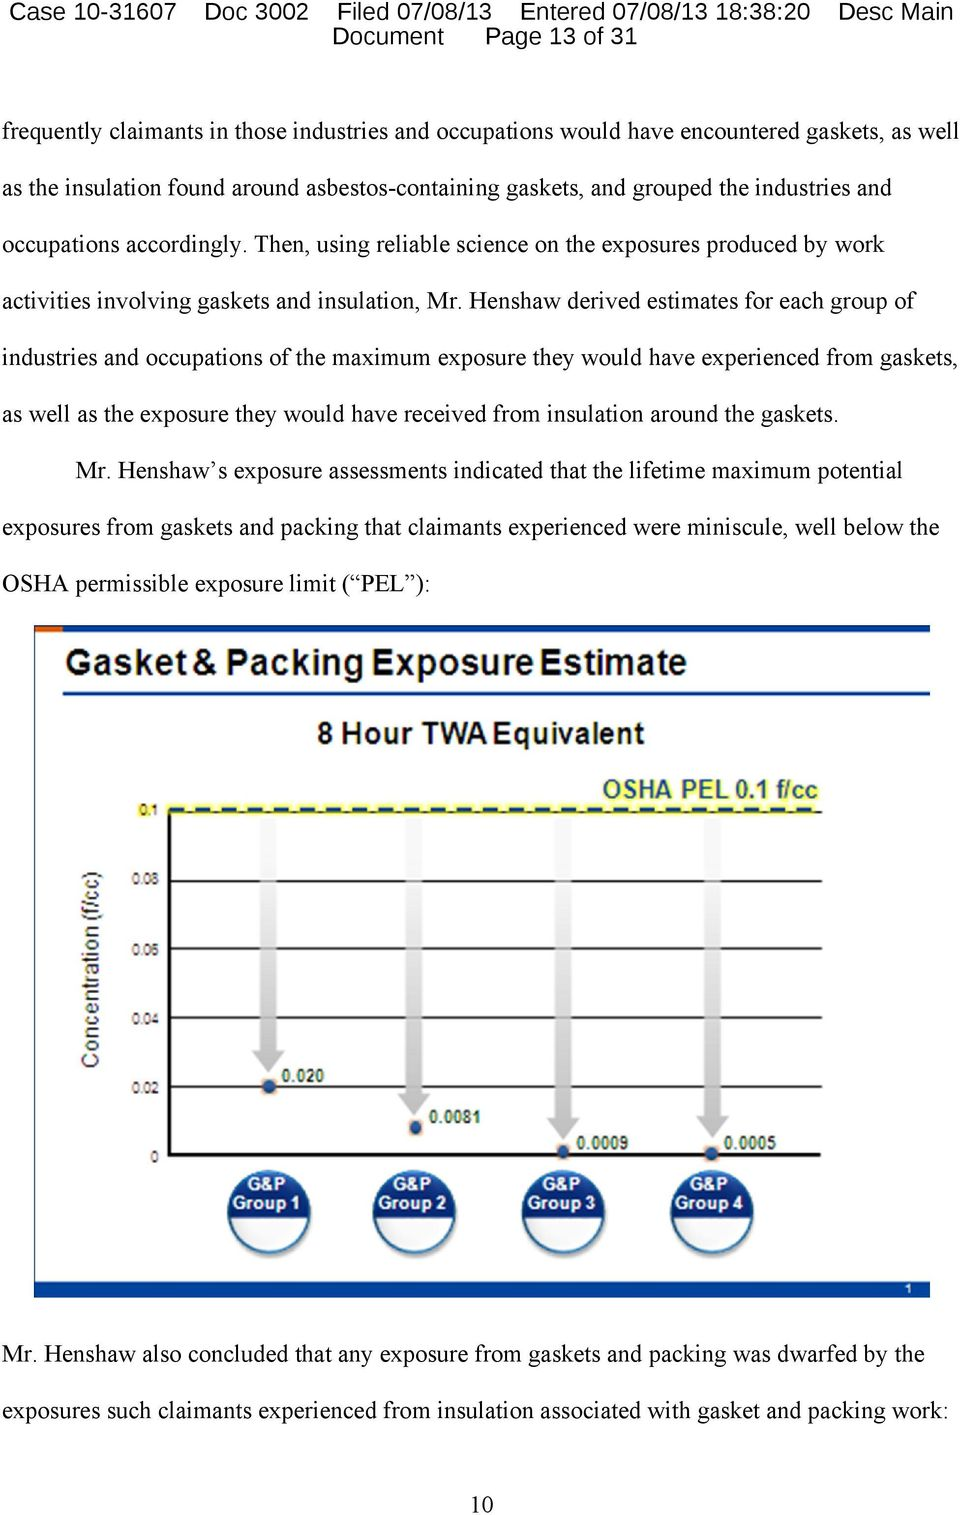 Henshaw derived estimates for each group of industries and occupations of the maximum exposure they would have experienced from gaskets, as well as the exposure they would have received from